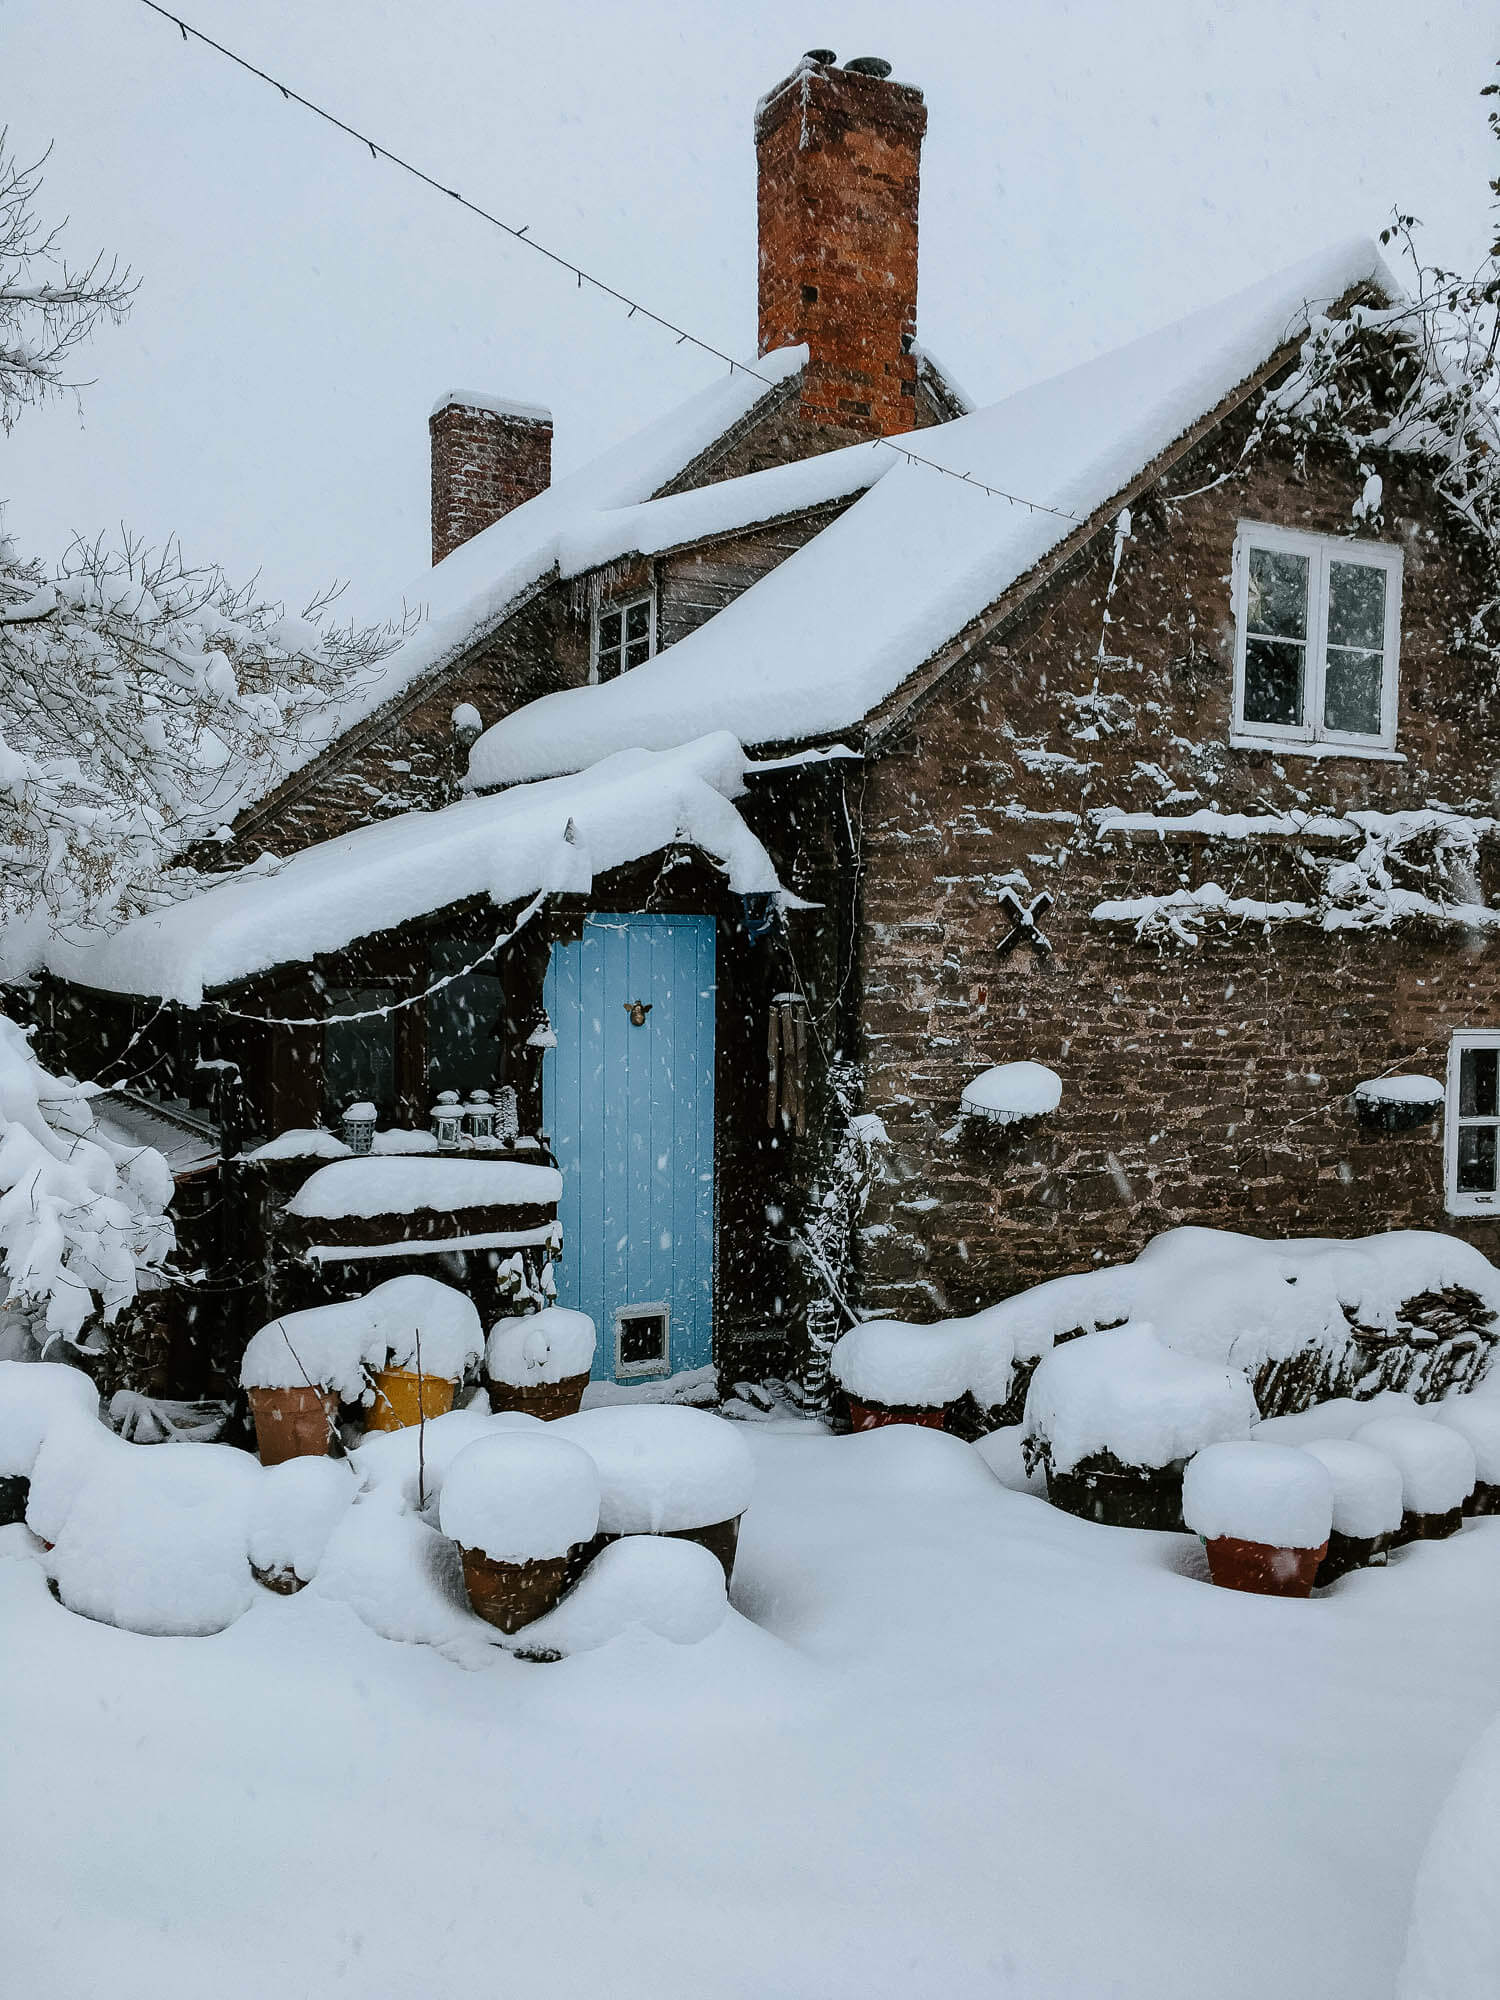 Little cottage with a blue door under a blanket of snow - the magic of snow at Christmas (5 of 6).jpg